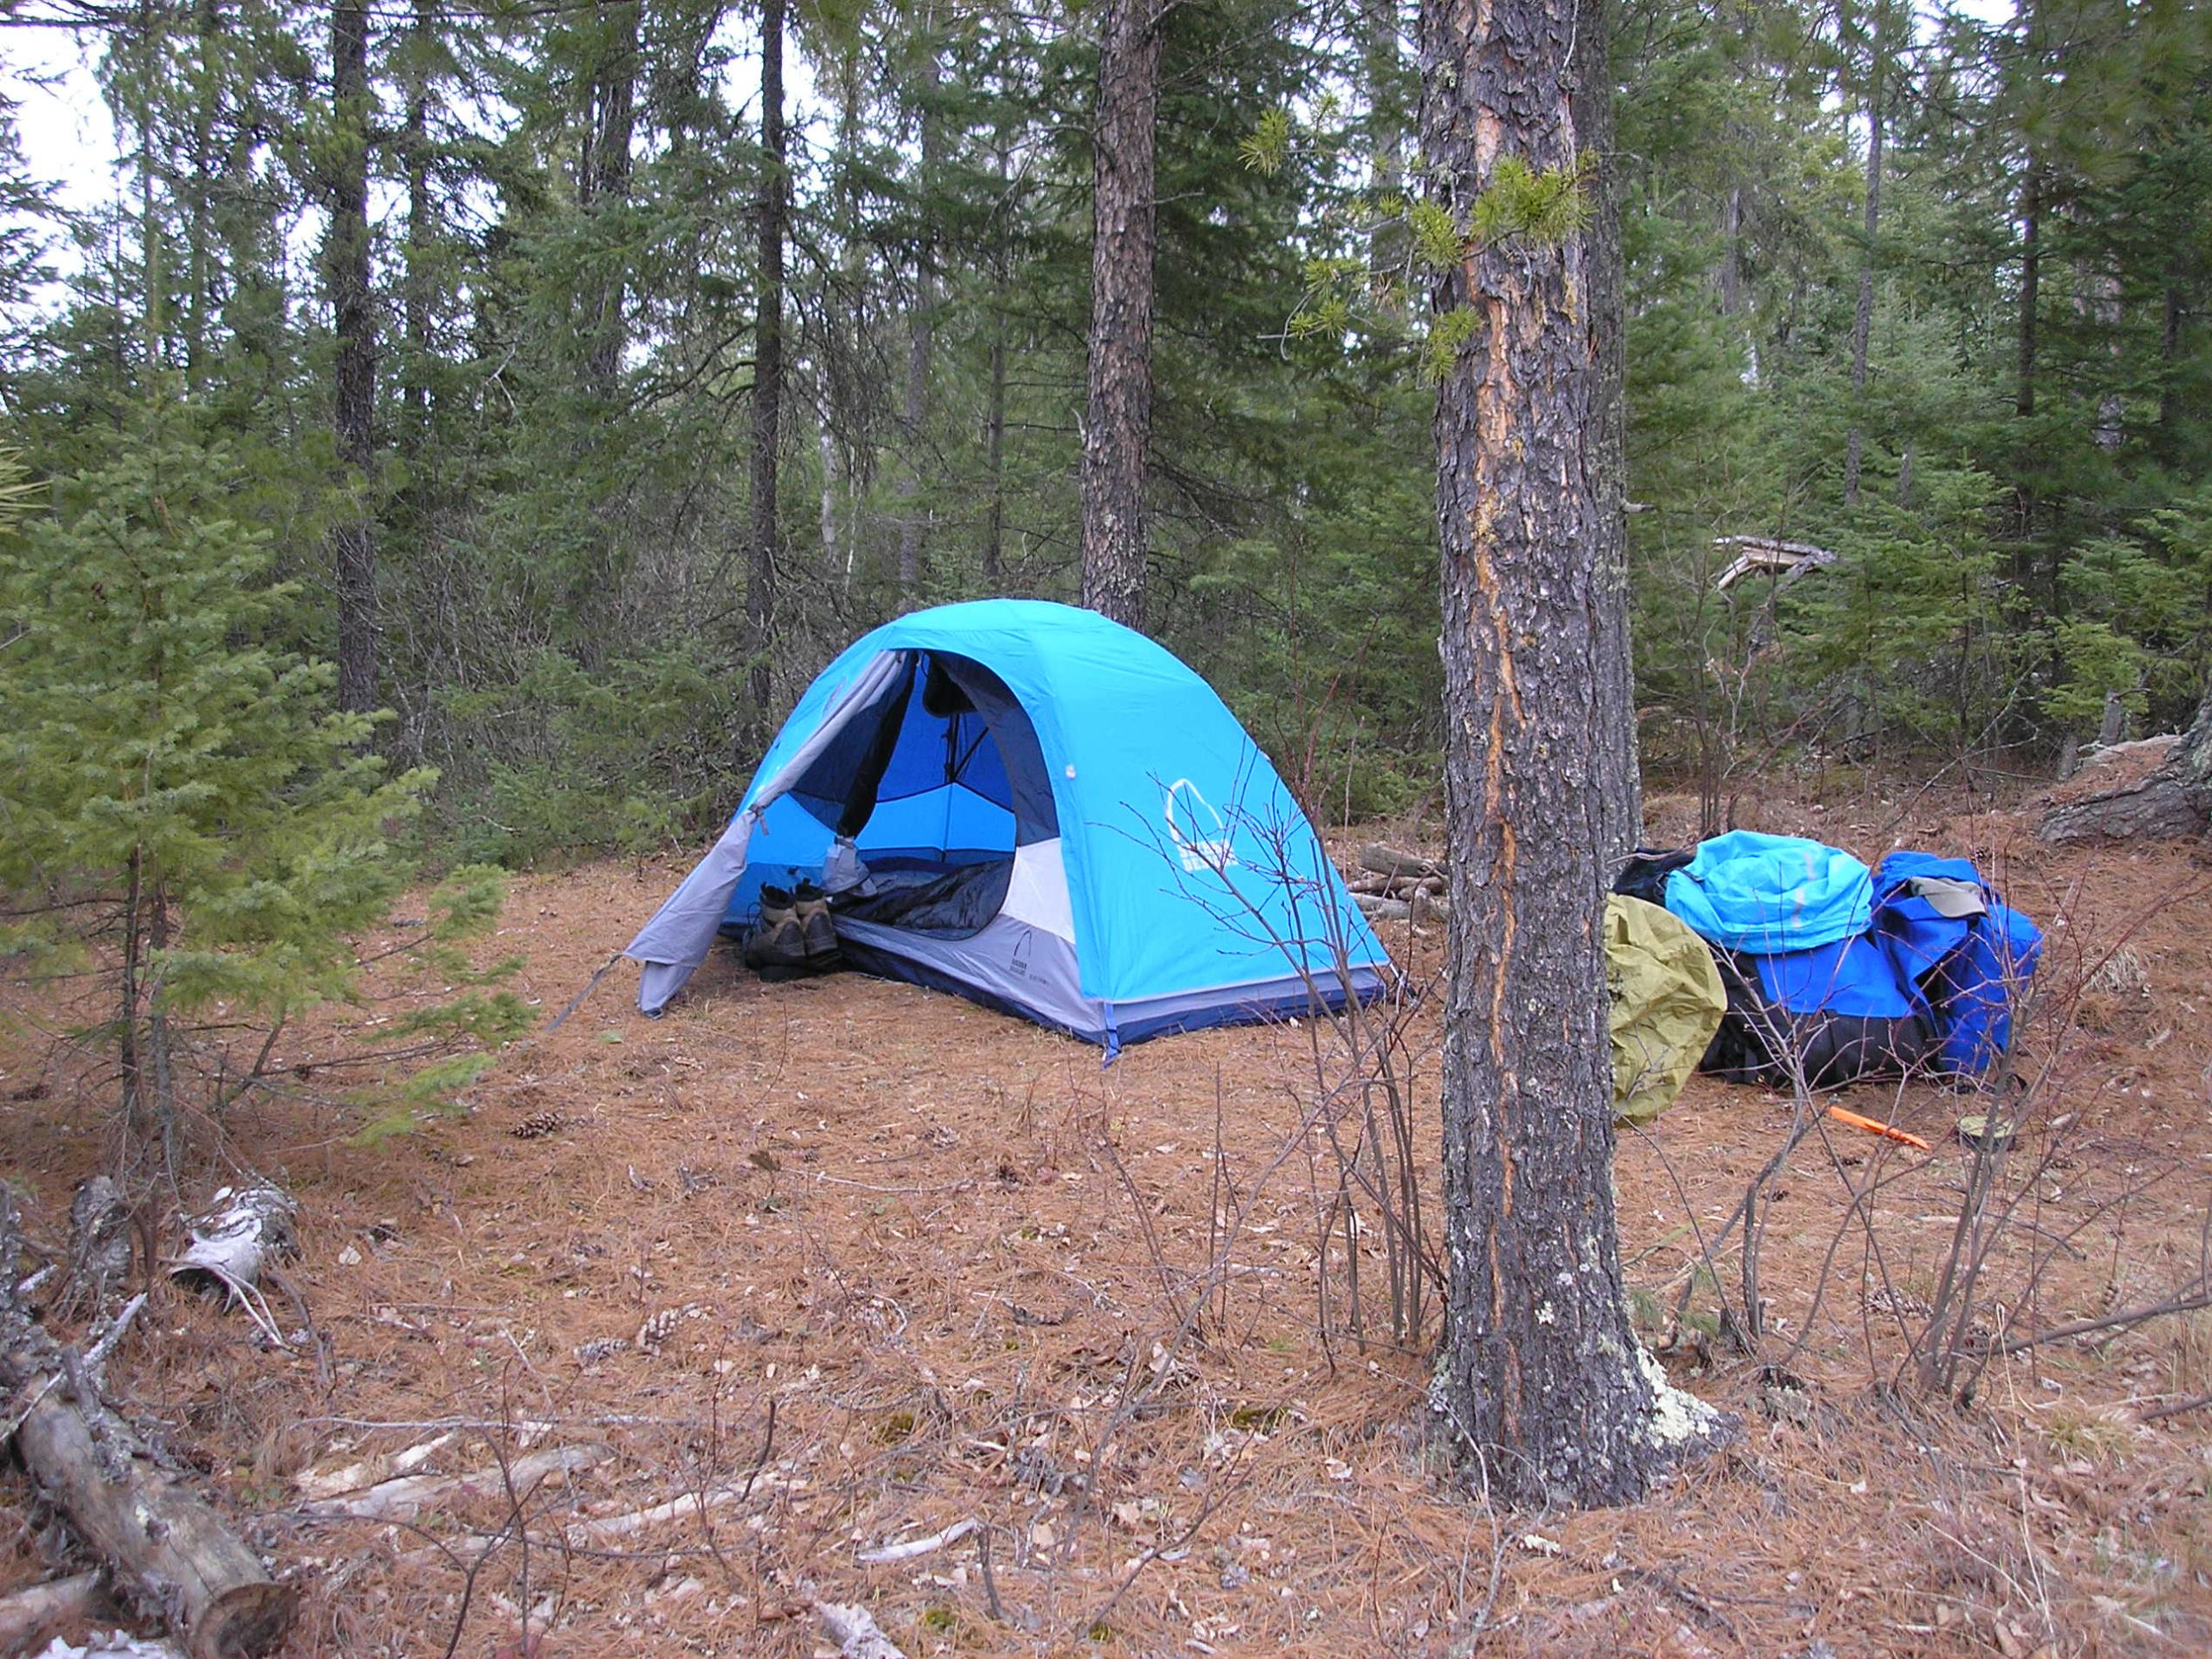 sierra designs electron 1. its very heavy for a true solo tent but its made out of sturdy materials which I think is more important than weight alone. & Boundary Waters Message Board Forum BWCA BWCAW Quetico Park